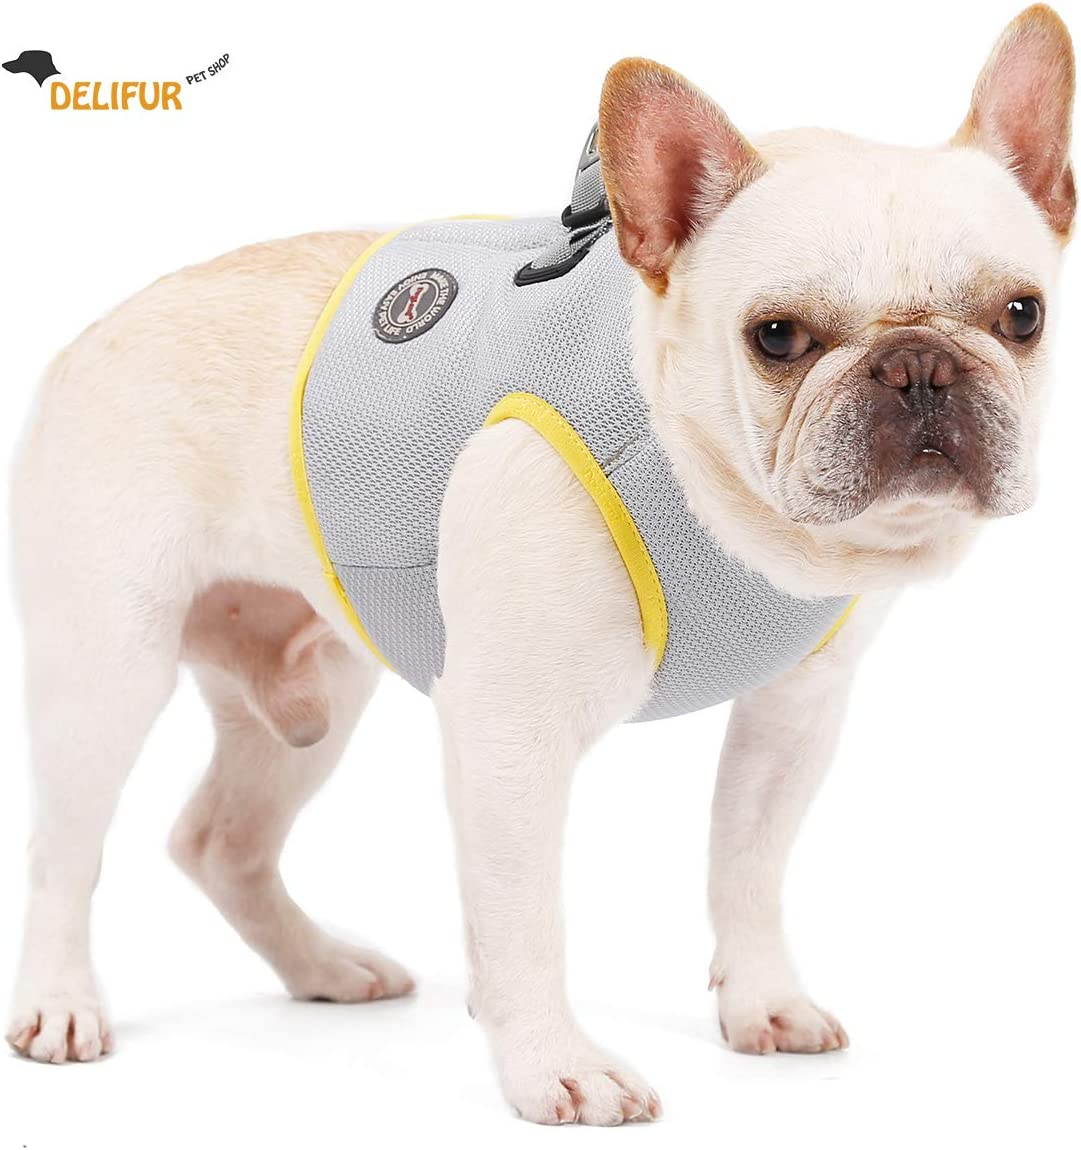 Delifur Dog Cooling Vest Harness with Adjustable Hook&Loop for Small Medium Large Dogs